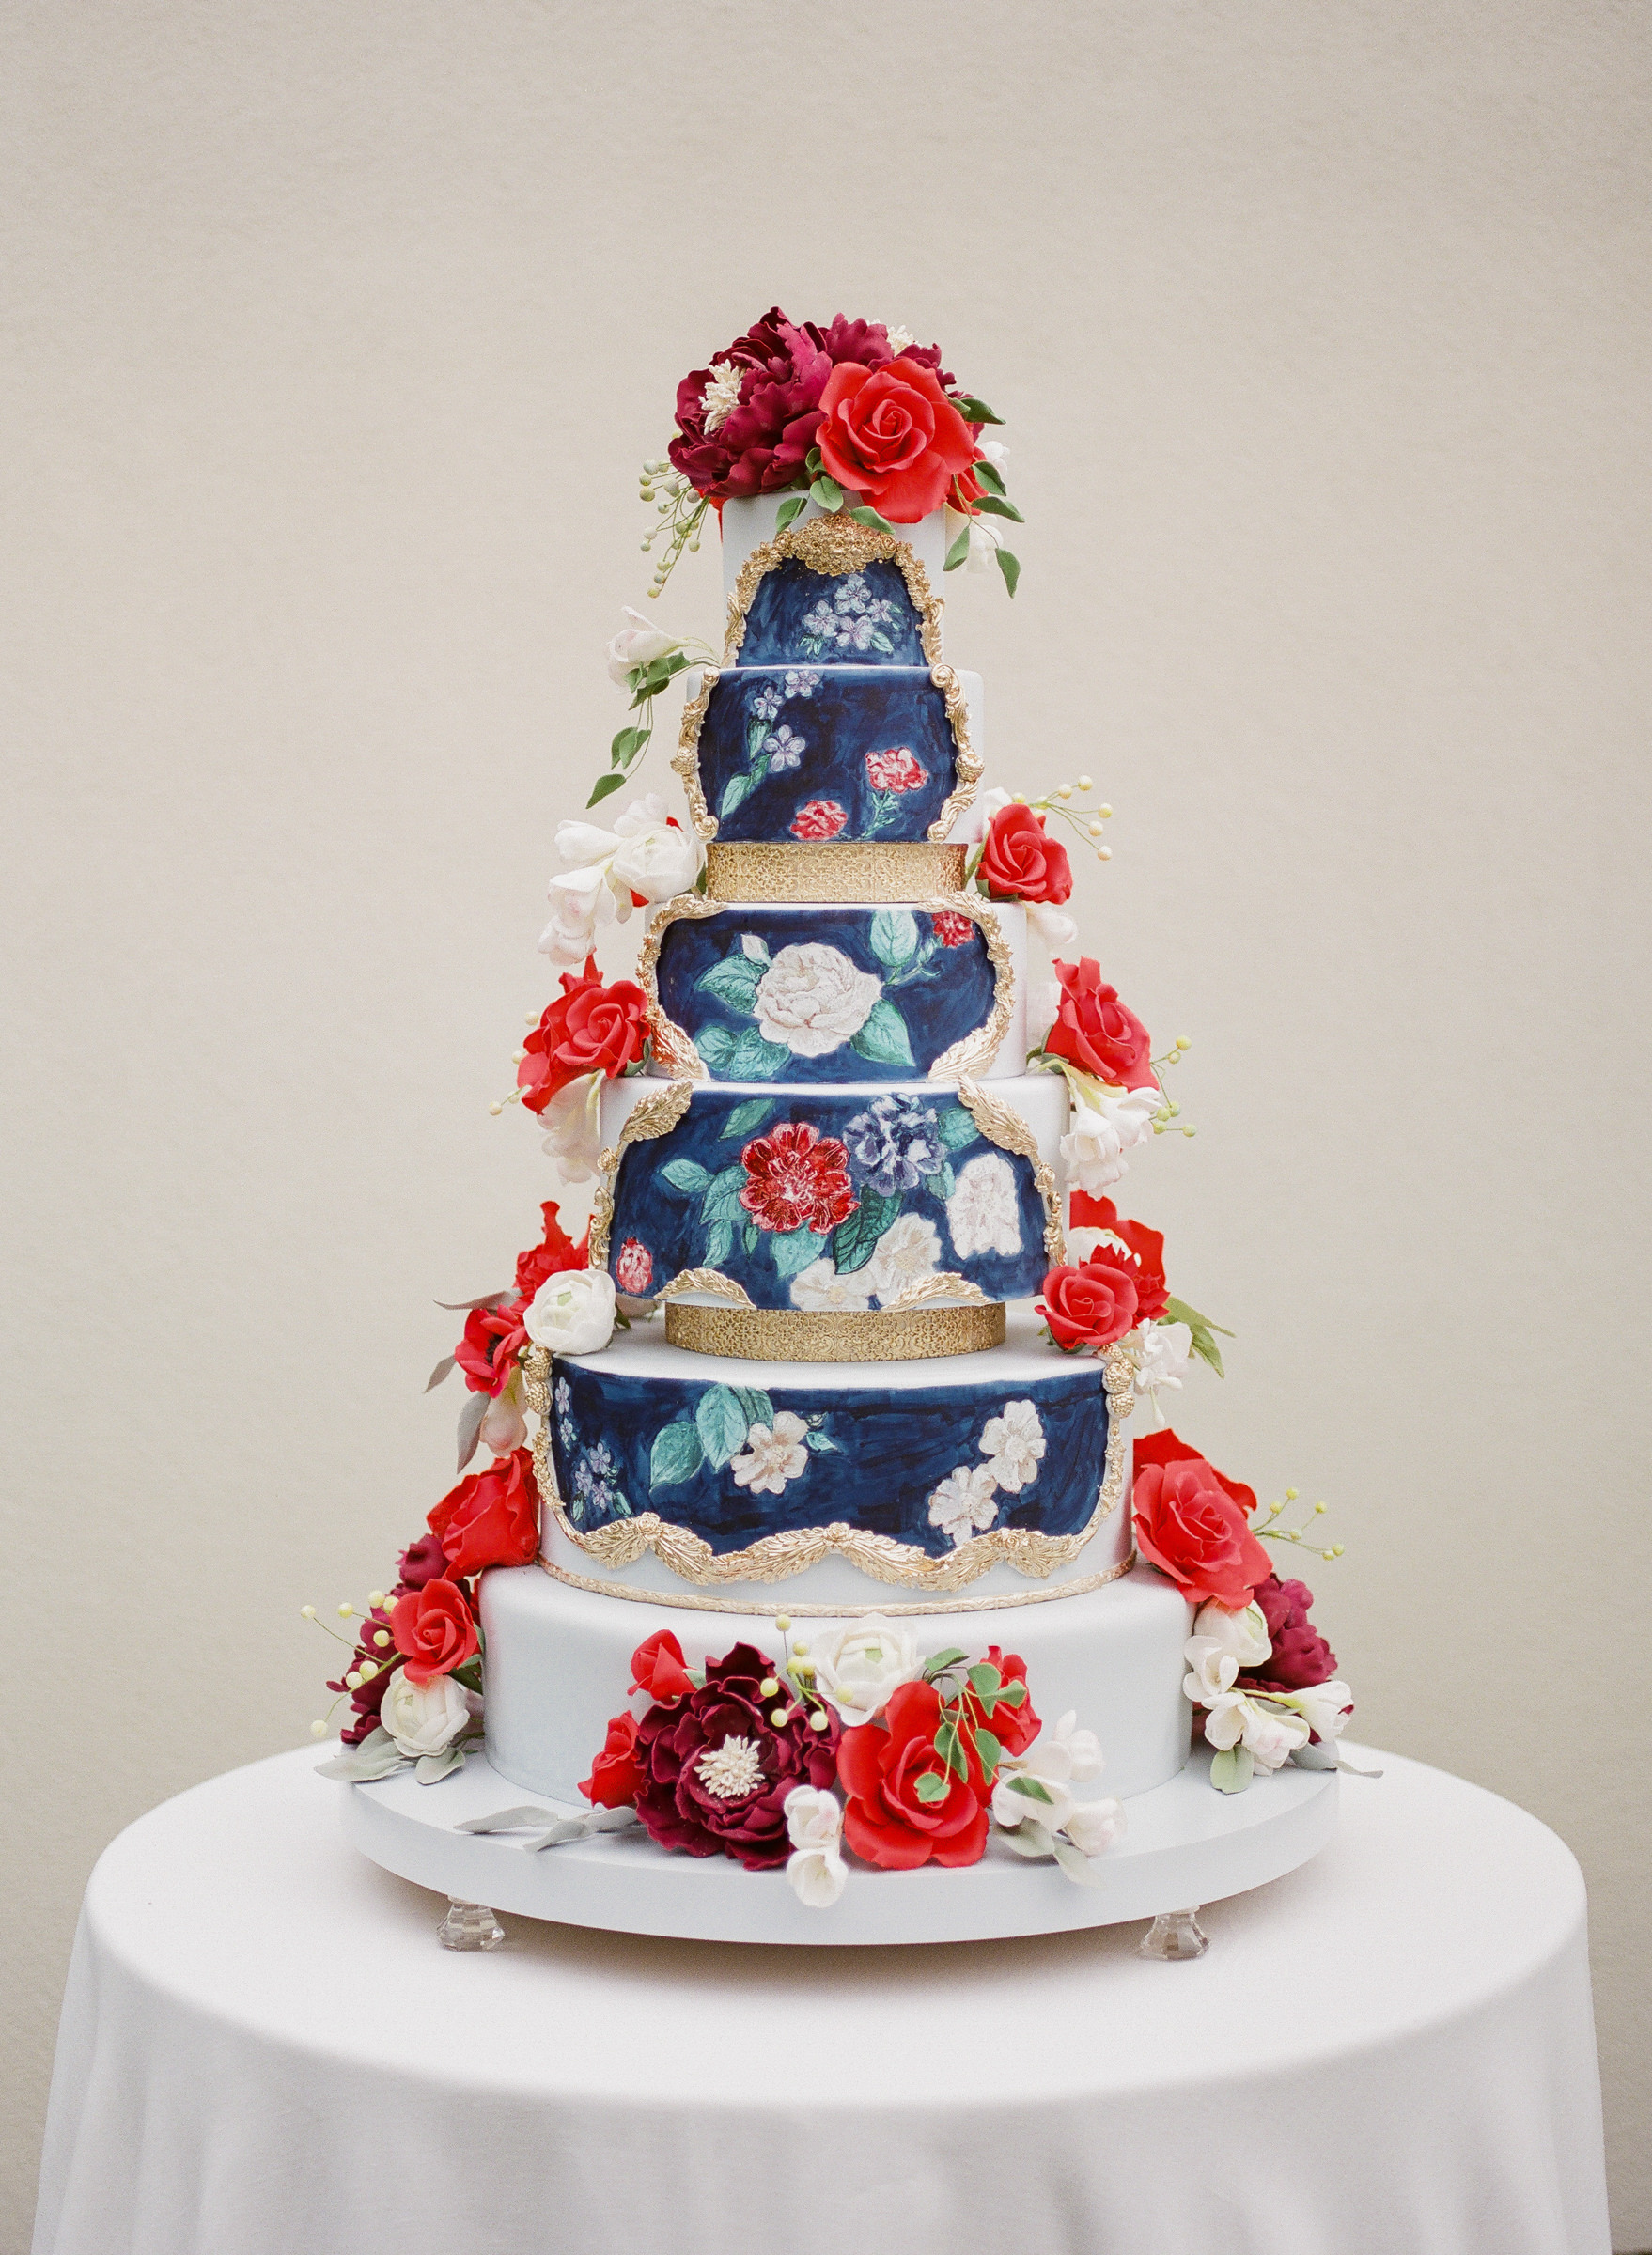 six-tiered-floral-painted-wedding-cake-blue-with-red-roses-photographed-by-corbin-gurkin-worlds-best-wedding-photos